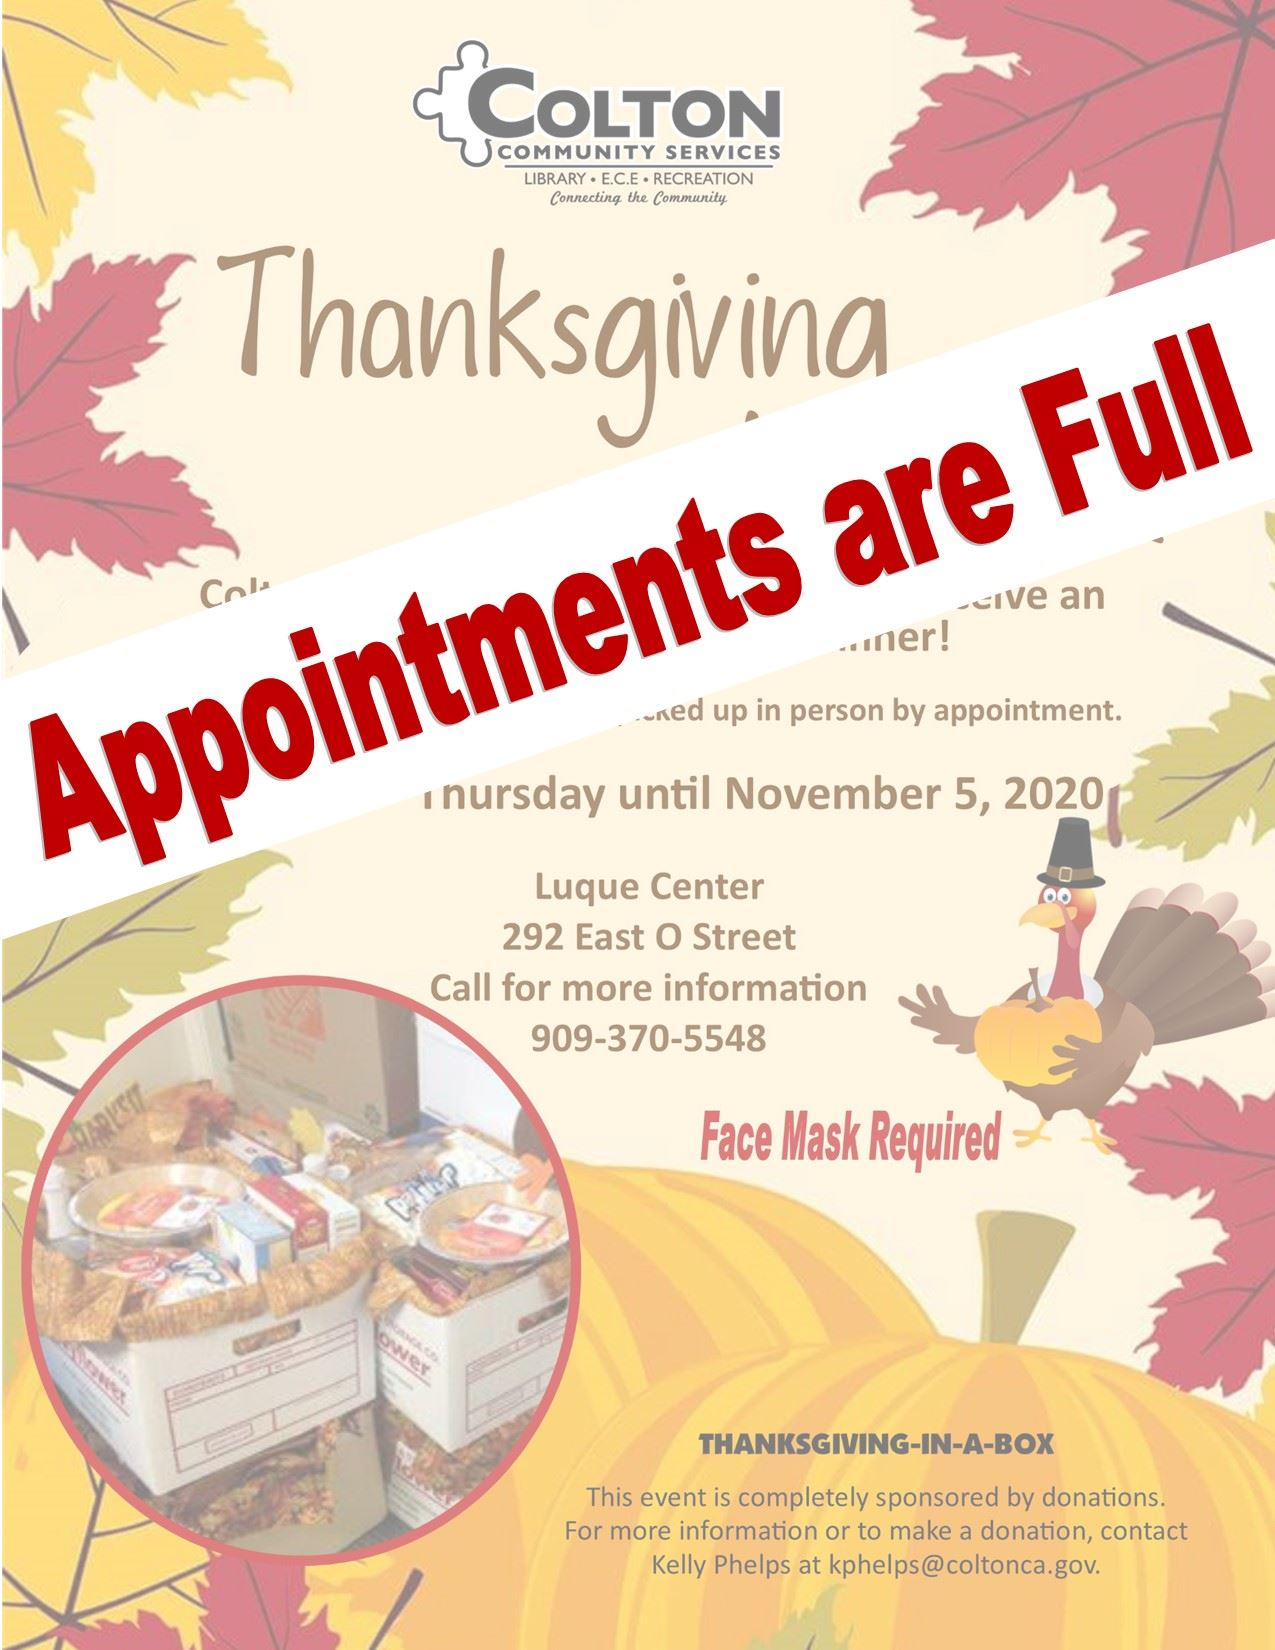 Thanksgiving Appointments Full